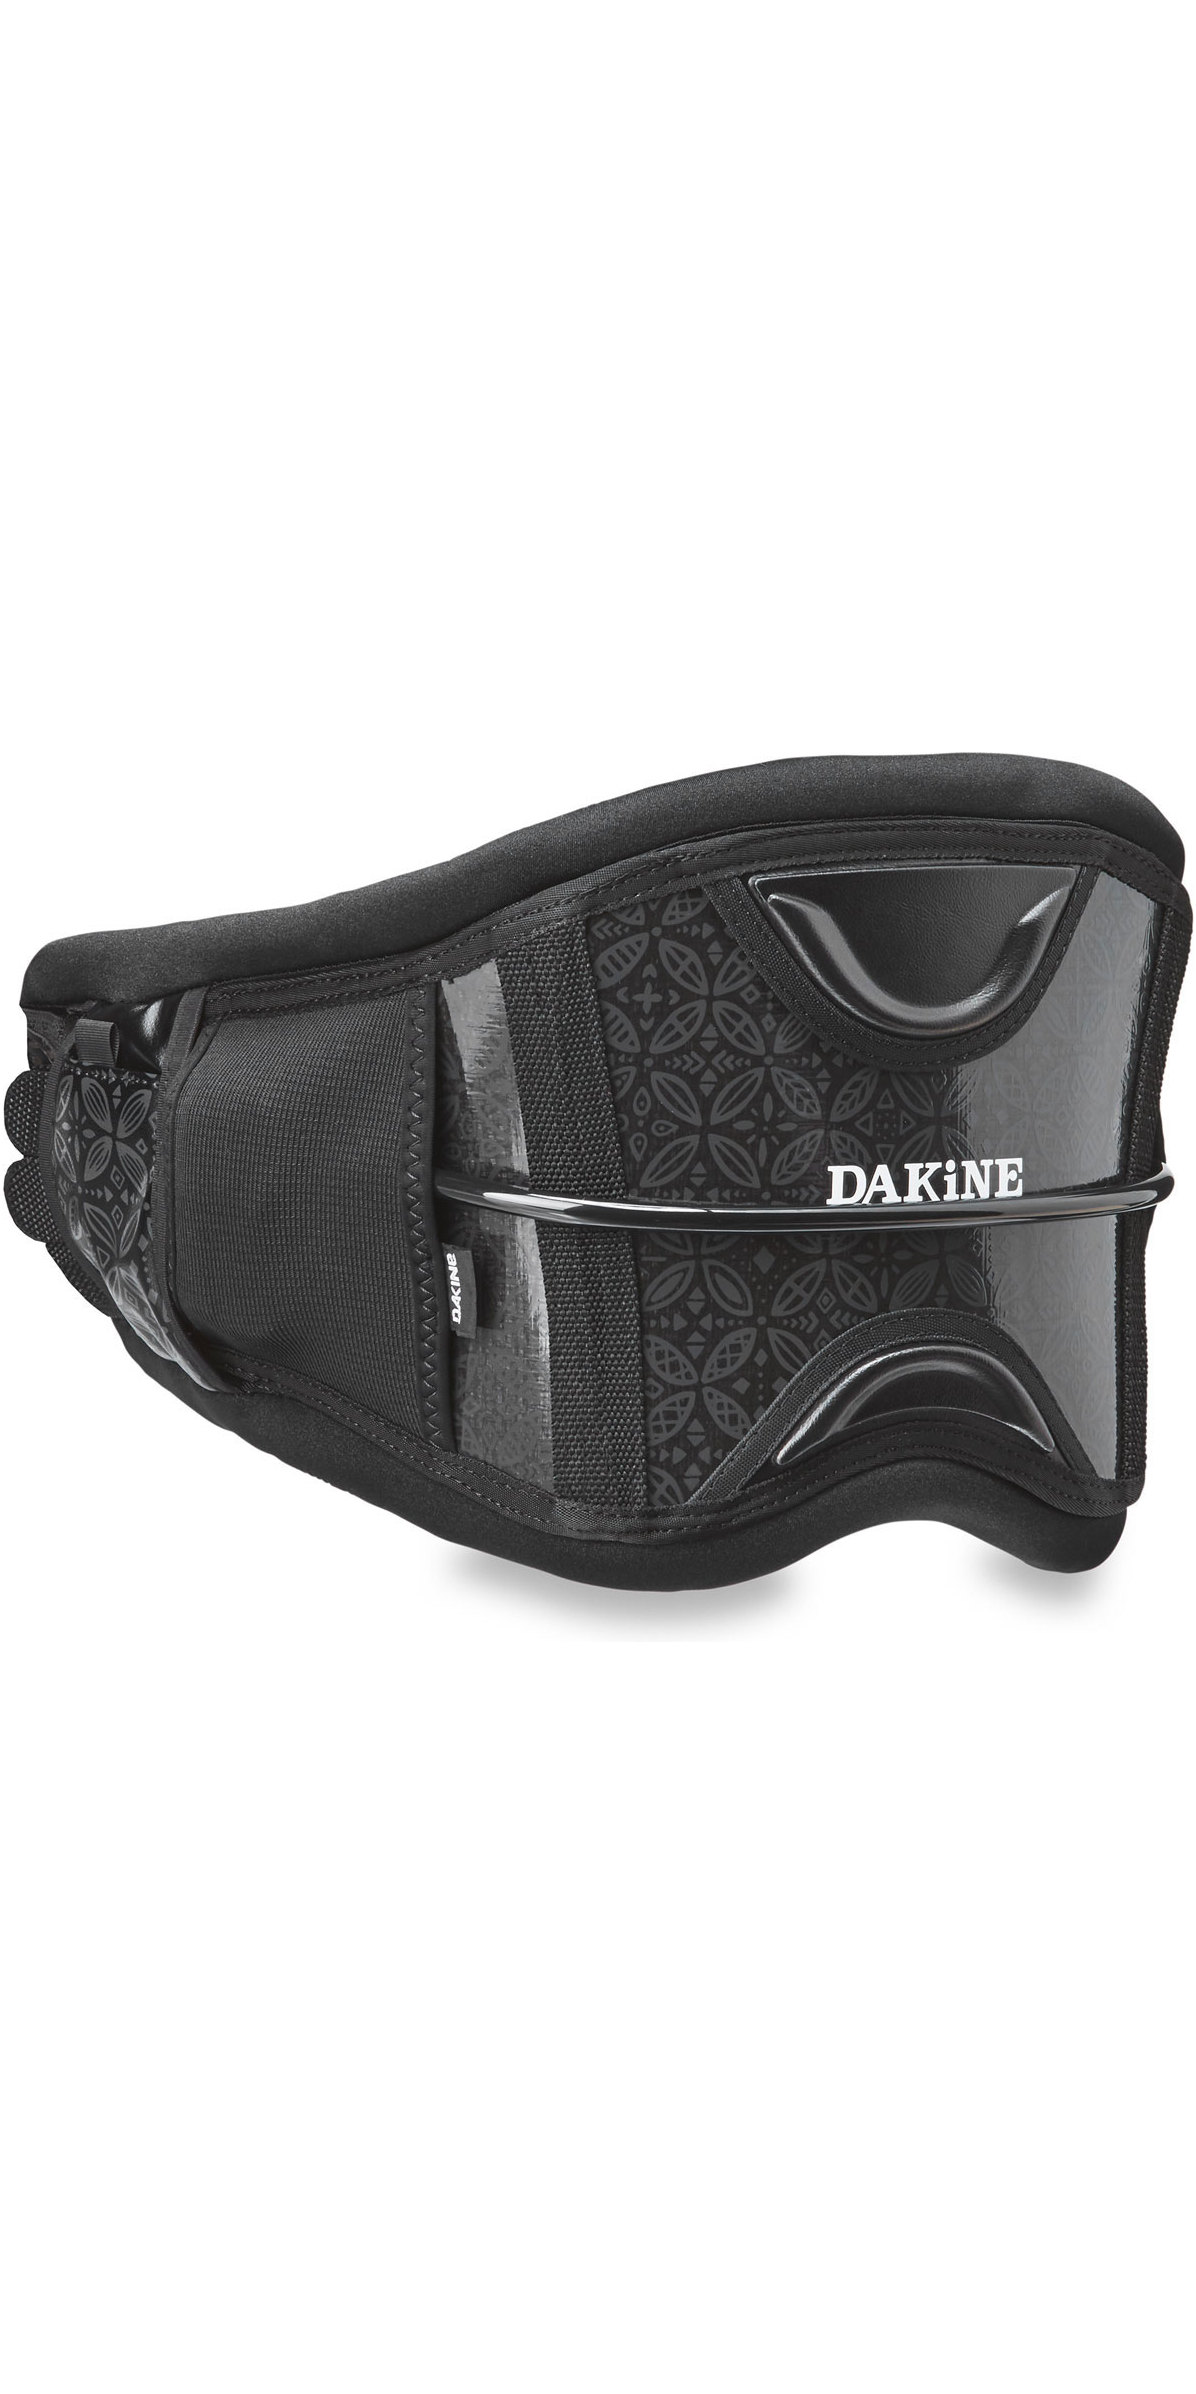 Kitesurfen 2018 Dakine Wahine Damen Kite Windsurf Harness Bay Islands 10001847